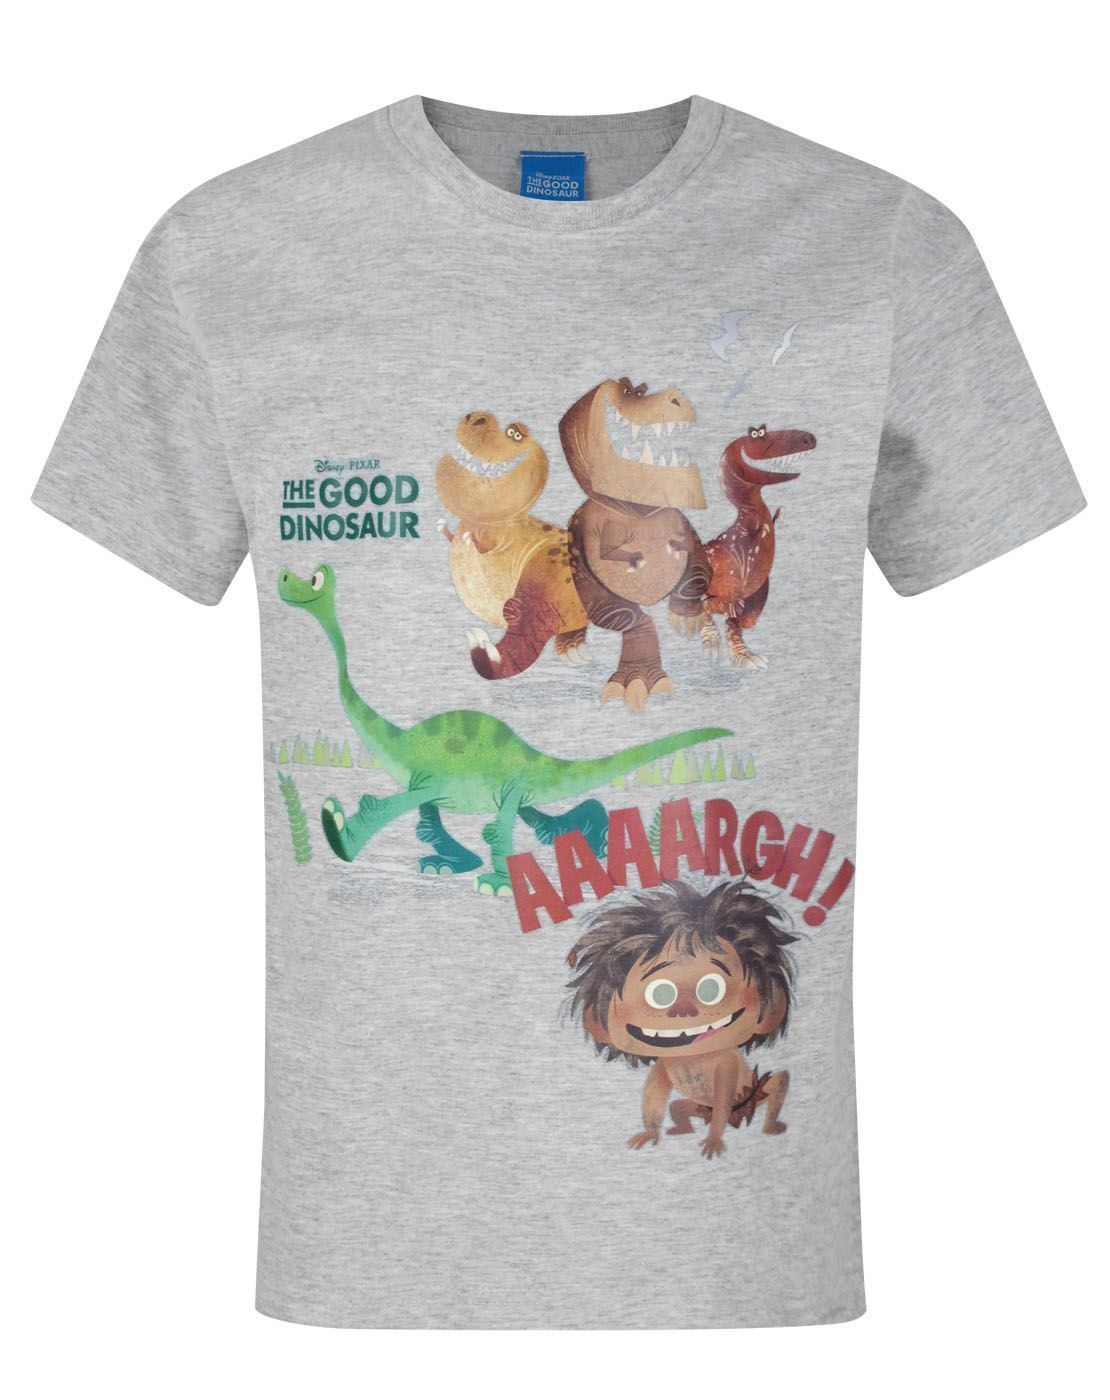 The Good Dinosaur Aaaargh Boy's T-Shirt